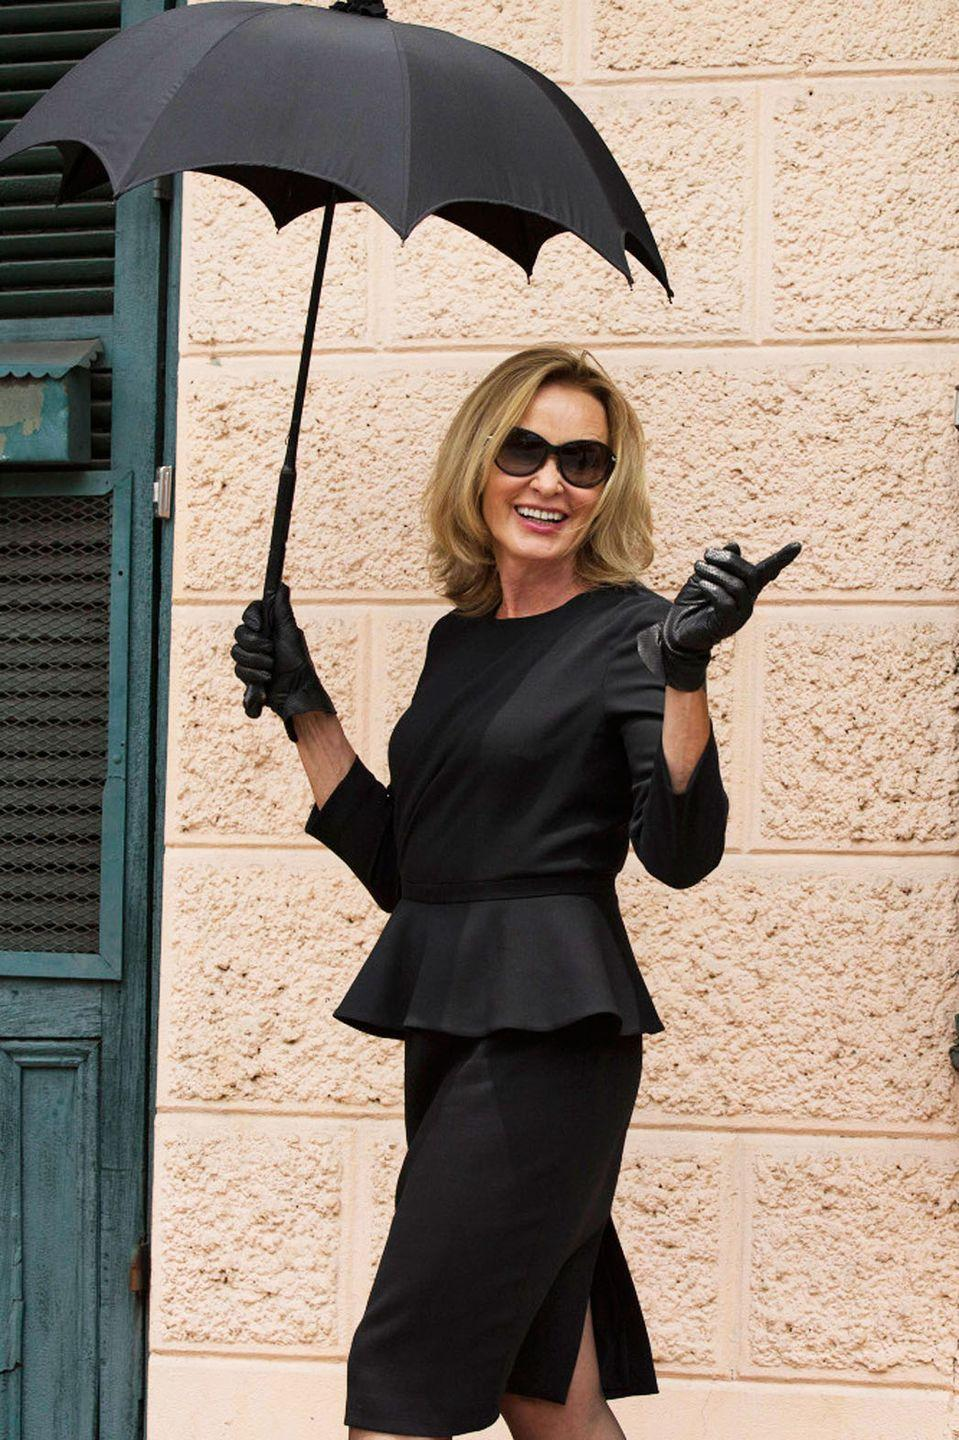 """<p>Get ready for the ultimate last-minute witch costume: Fiona Goode from <em>American Horror Story: Coven</em>. If you have a black shirt and skirt in your closet already, you'll just need gloves and an umbrella!</p><p><a class=""""link rapid-noclick-resp"""" href=""""https://www.amazon.com/Parade-Gloves-Costume-Jewelry-Inspection/dp/B07QXN2PDH/?tag=syn-yahoo-20&ascsubtag=%5Bartid%7C2164.g.37050429%5Bsrc%7Cyahoo-us"""" rel=""""nofollow noopener"""" target=""""_blank"""" data-ylk=""""slk:SHOP BLACK GLOVES"""">SHOP BLACK GLOVES</a></p><p><a class=""""link rapid-noclick-resp"""" href=""""https://www.amazon.com/Premium-Stretch-Pencil-Skirt-Women/dp/B071YVPSQX/?tag=syn-yahoo-20&ascsubtag=%5Bartid%7C2164.g.37050429%5Bsrc%7Cyahoo-us"""" rel=""""nofollow noopener"""" target=""""_blank"""" data-ylk=""""slk:SHOP BLACK PENCIL SKIRTS"""">SHOP BLACK PENCIL SKIRTS</a></p><p><a class=""""link rapid-noclick-resp"""" href=""""https://www.amazon.com/SOLY-HUX-Womens-Elegant-Blouses/dp/B07VLDJ9BM/?tag=syn-yahoo-20&ascsubtag=%5Bartid%7C2164.g.37050429%5Bsrc%7Cyahoo-us"""" rel=""""nofollow noopener"""" target=""""_blank"""" data-ylk=""""slk:SHOP BLACK PEPLUM TOPS"""">SHOP BLACK PEPLUM TOPS</a></p><p><a class=""""link rapid-noclick-resp"""" href=""""https://www.amazon.com/Kung-Fu-Smith-Victorian-Protection/dp/B018Q826ZY/?tag=syn-yahoo-20&ascsubtag=%5Bartid%7C2164.g.37050429%5Bsrc%7Cyahoo-us"""" rel=""""nofollow noopener"""" target=""""_blank"""" data-ylk=""""slk:SHOP BLACK PARASOLS"""">SHOP BLACK PARASOLS</a></p>"""